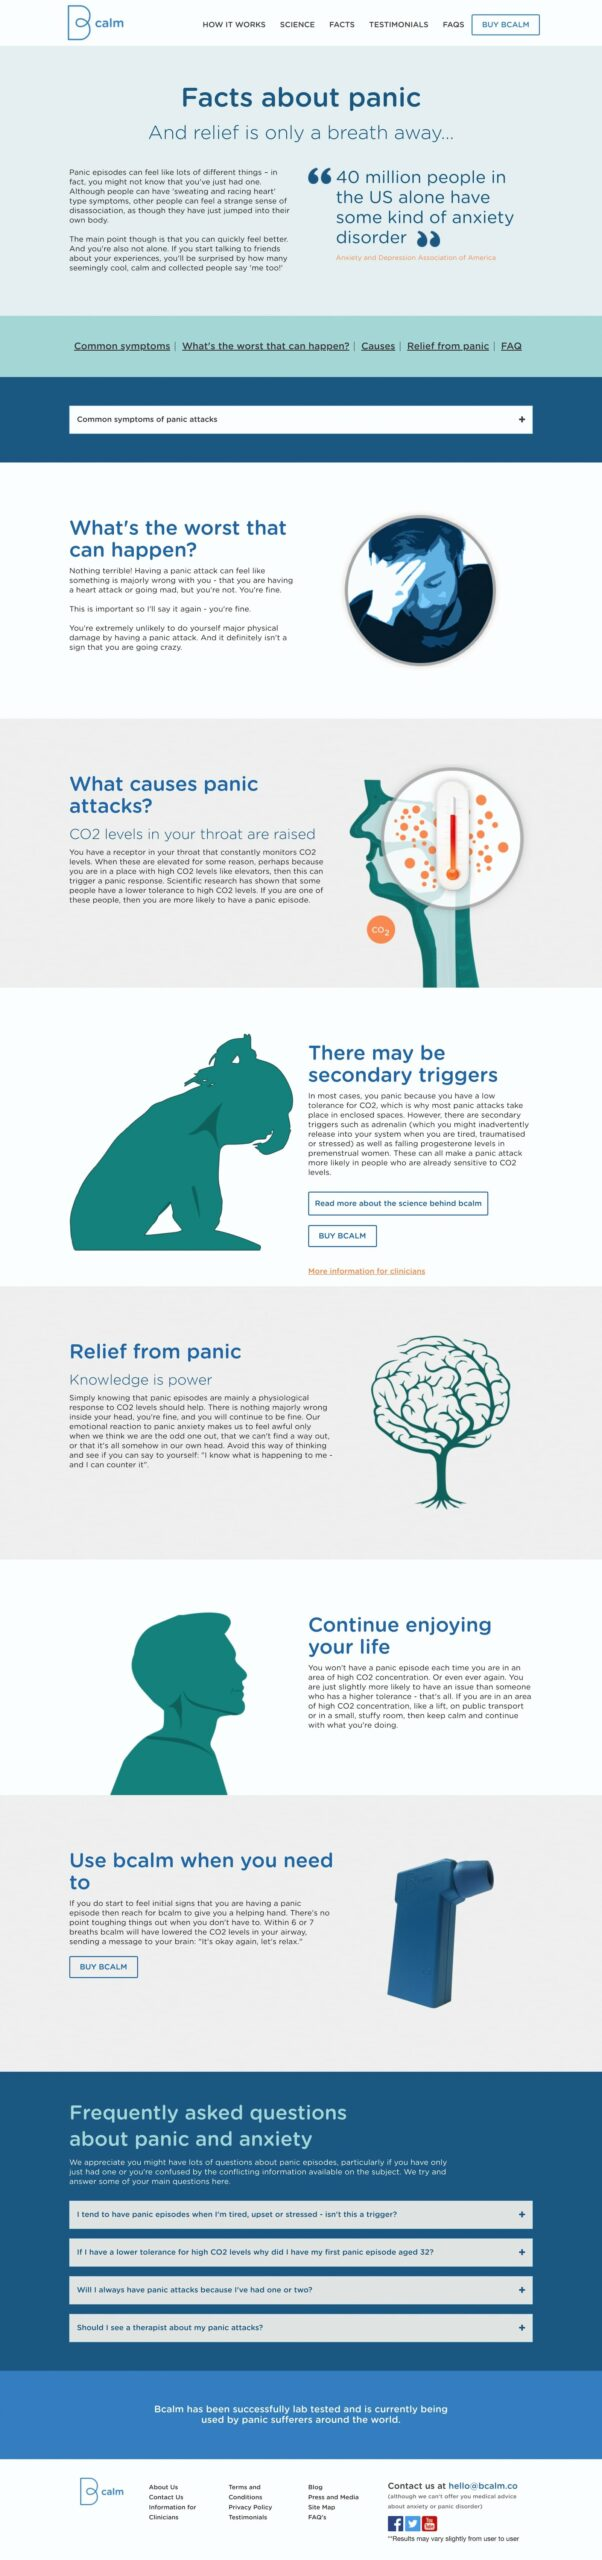 bcalm-co-facts-about-panic